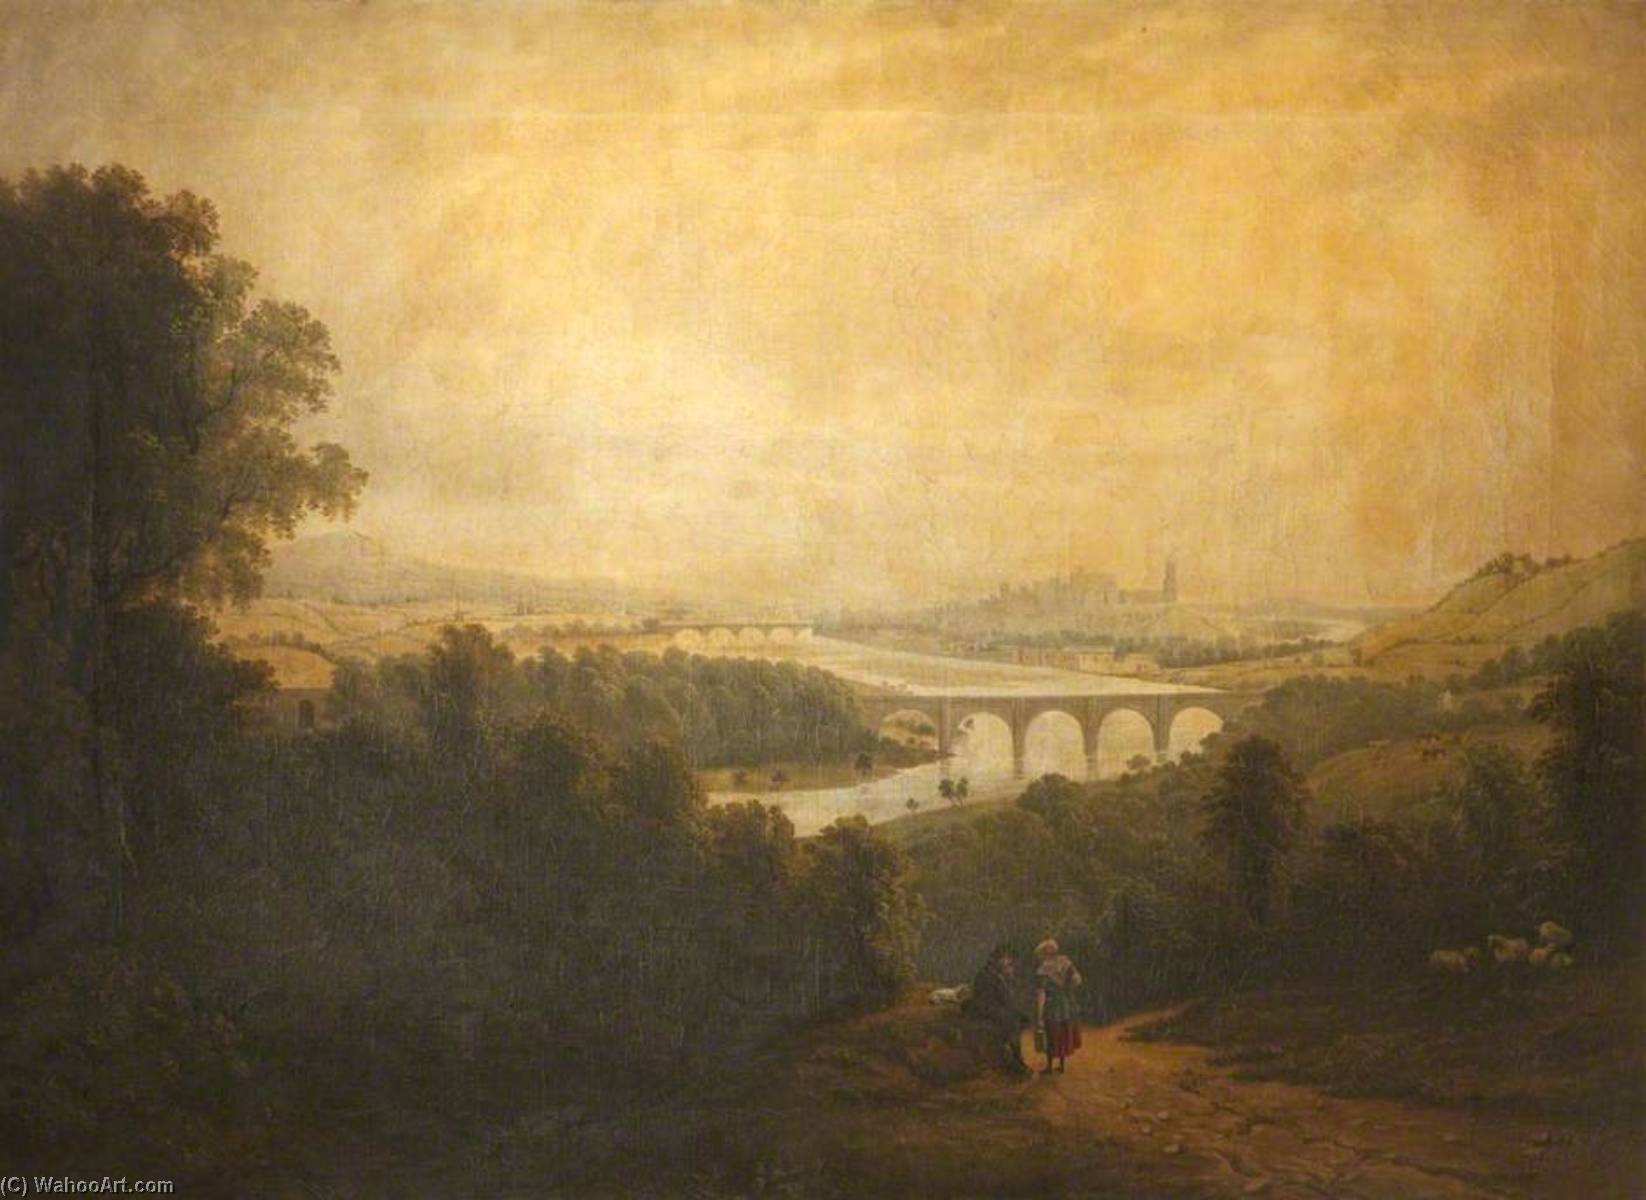 Lancaster with the Aqueduct Bridge, Oil On Canvas by John Henderson (1797-1878)